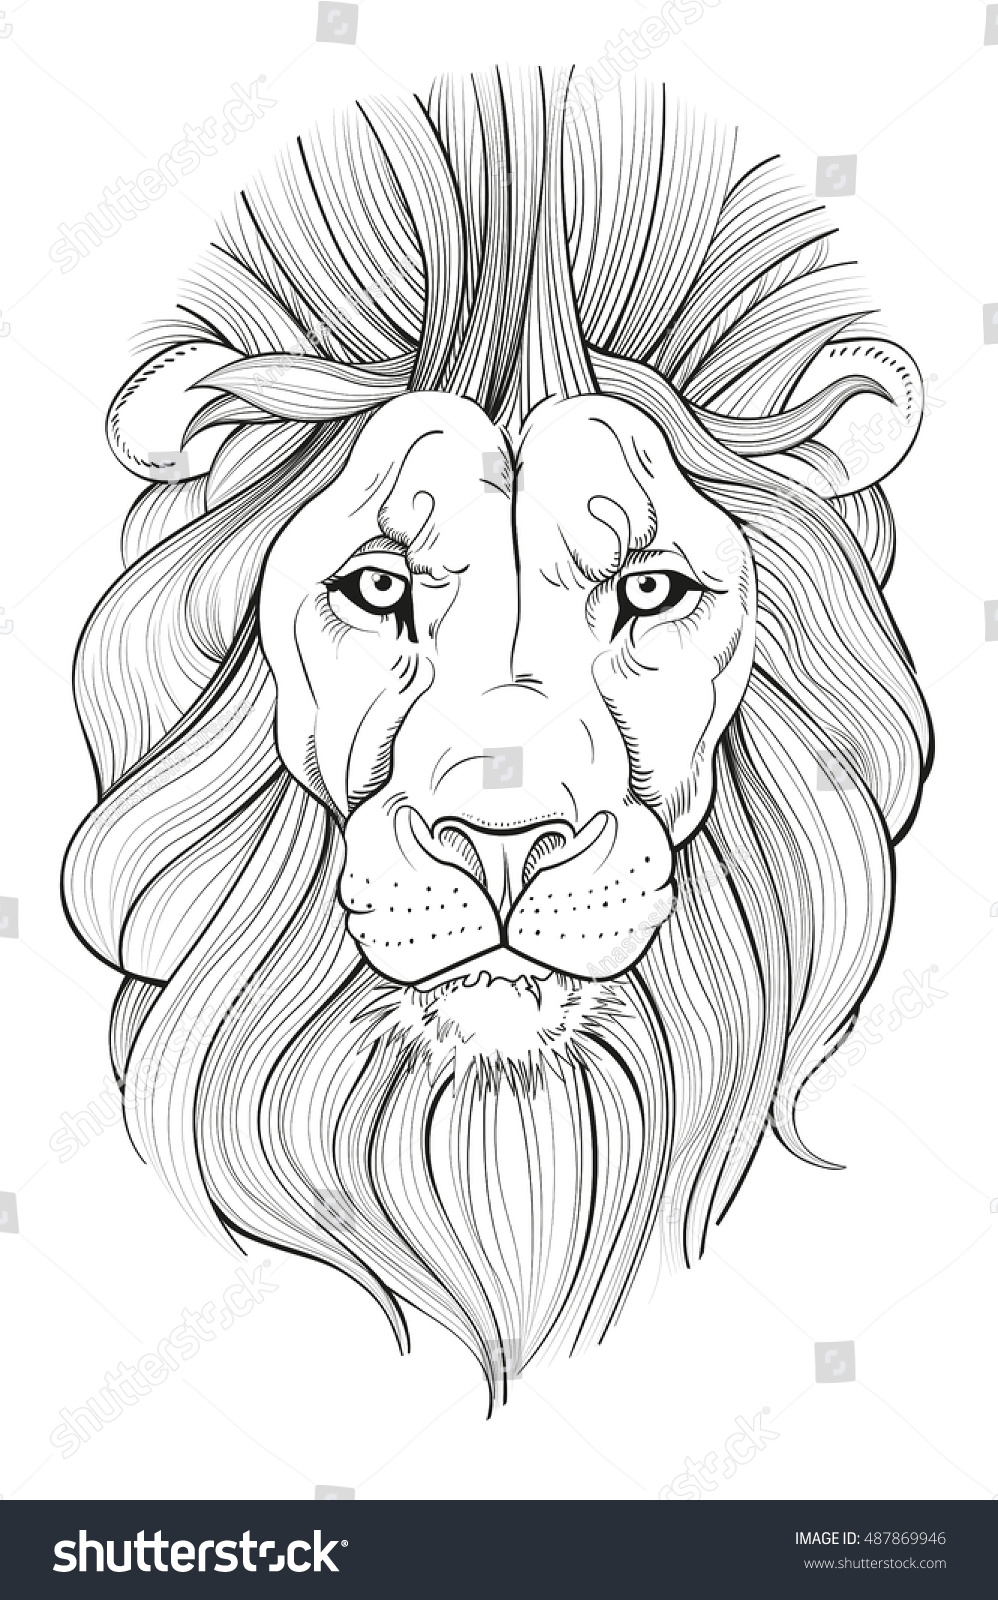 Drawing Skill Lion Face Outline Drawing Download 8 lion head outline free vectors. drawing skill blogger